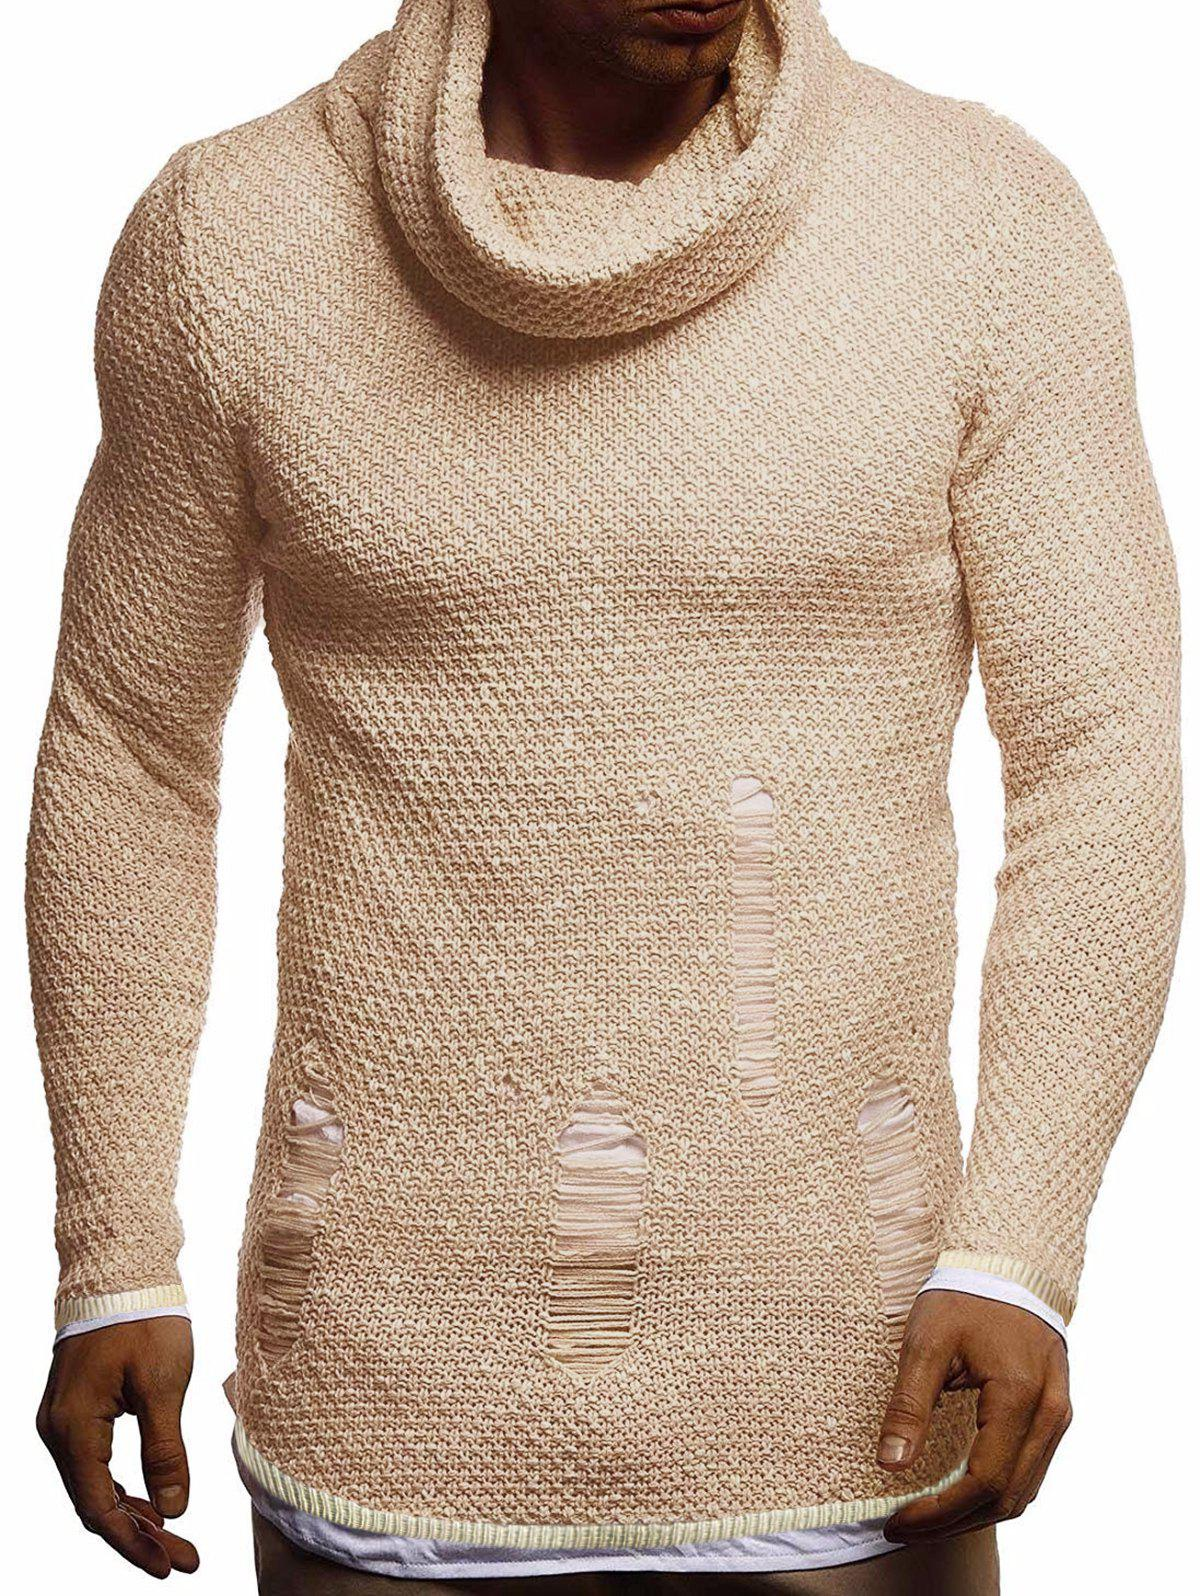 Ripped Decorated Casual Pullover Sweater - BEIGE XS